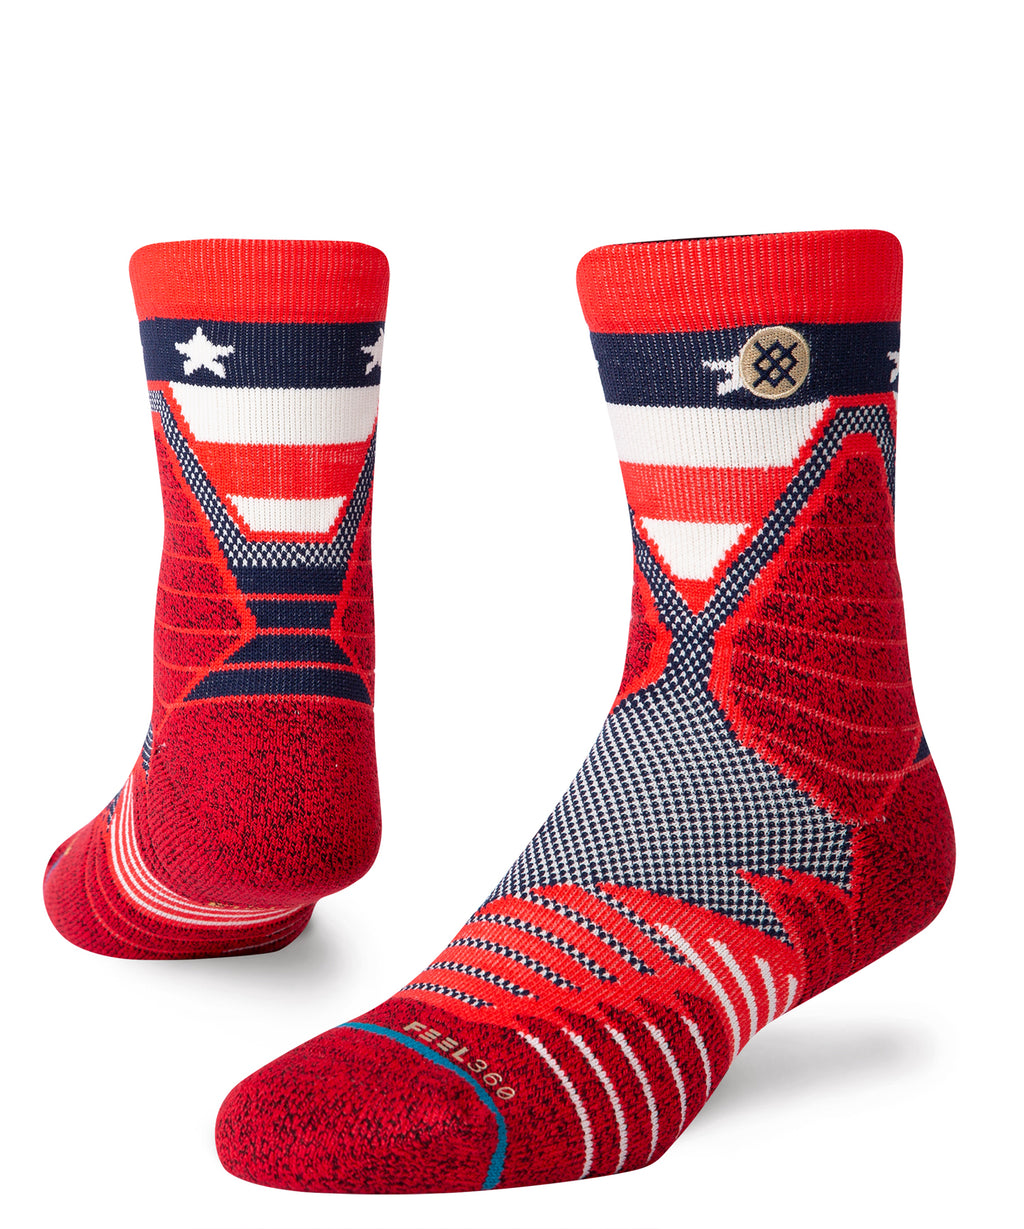 Hoops American St Quarter Socks